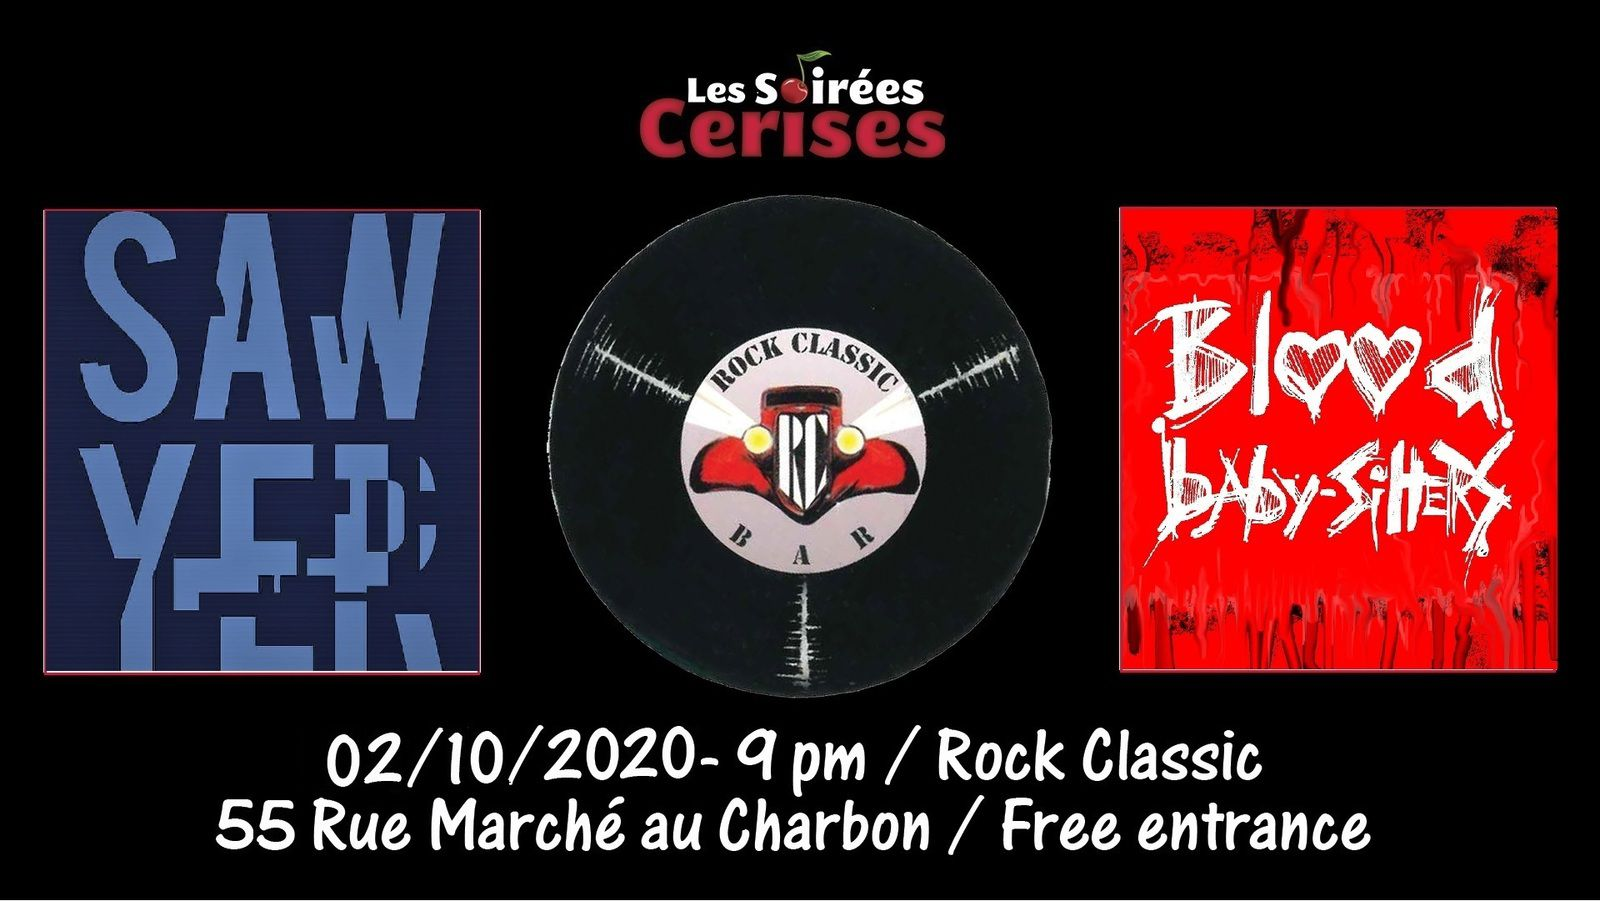 🎵 Sawyer (F) + Blood Baby-Sitters @ Rock Classic - 02/10/2020  - 21h00 - Entrée gratuite / Free entrance !